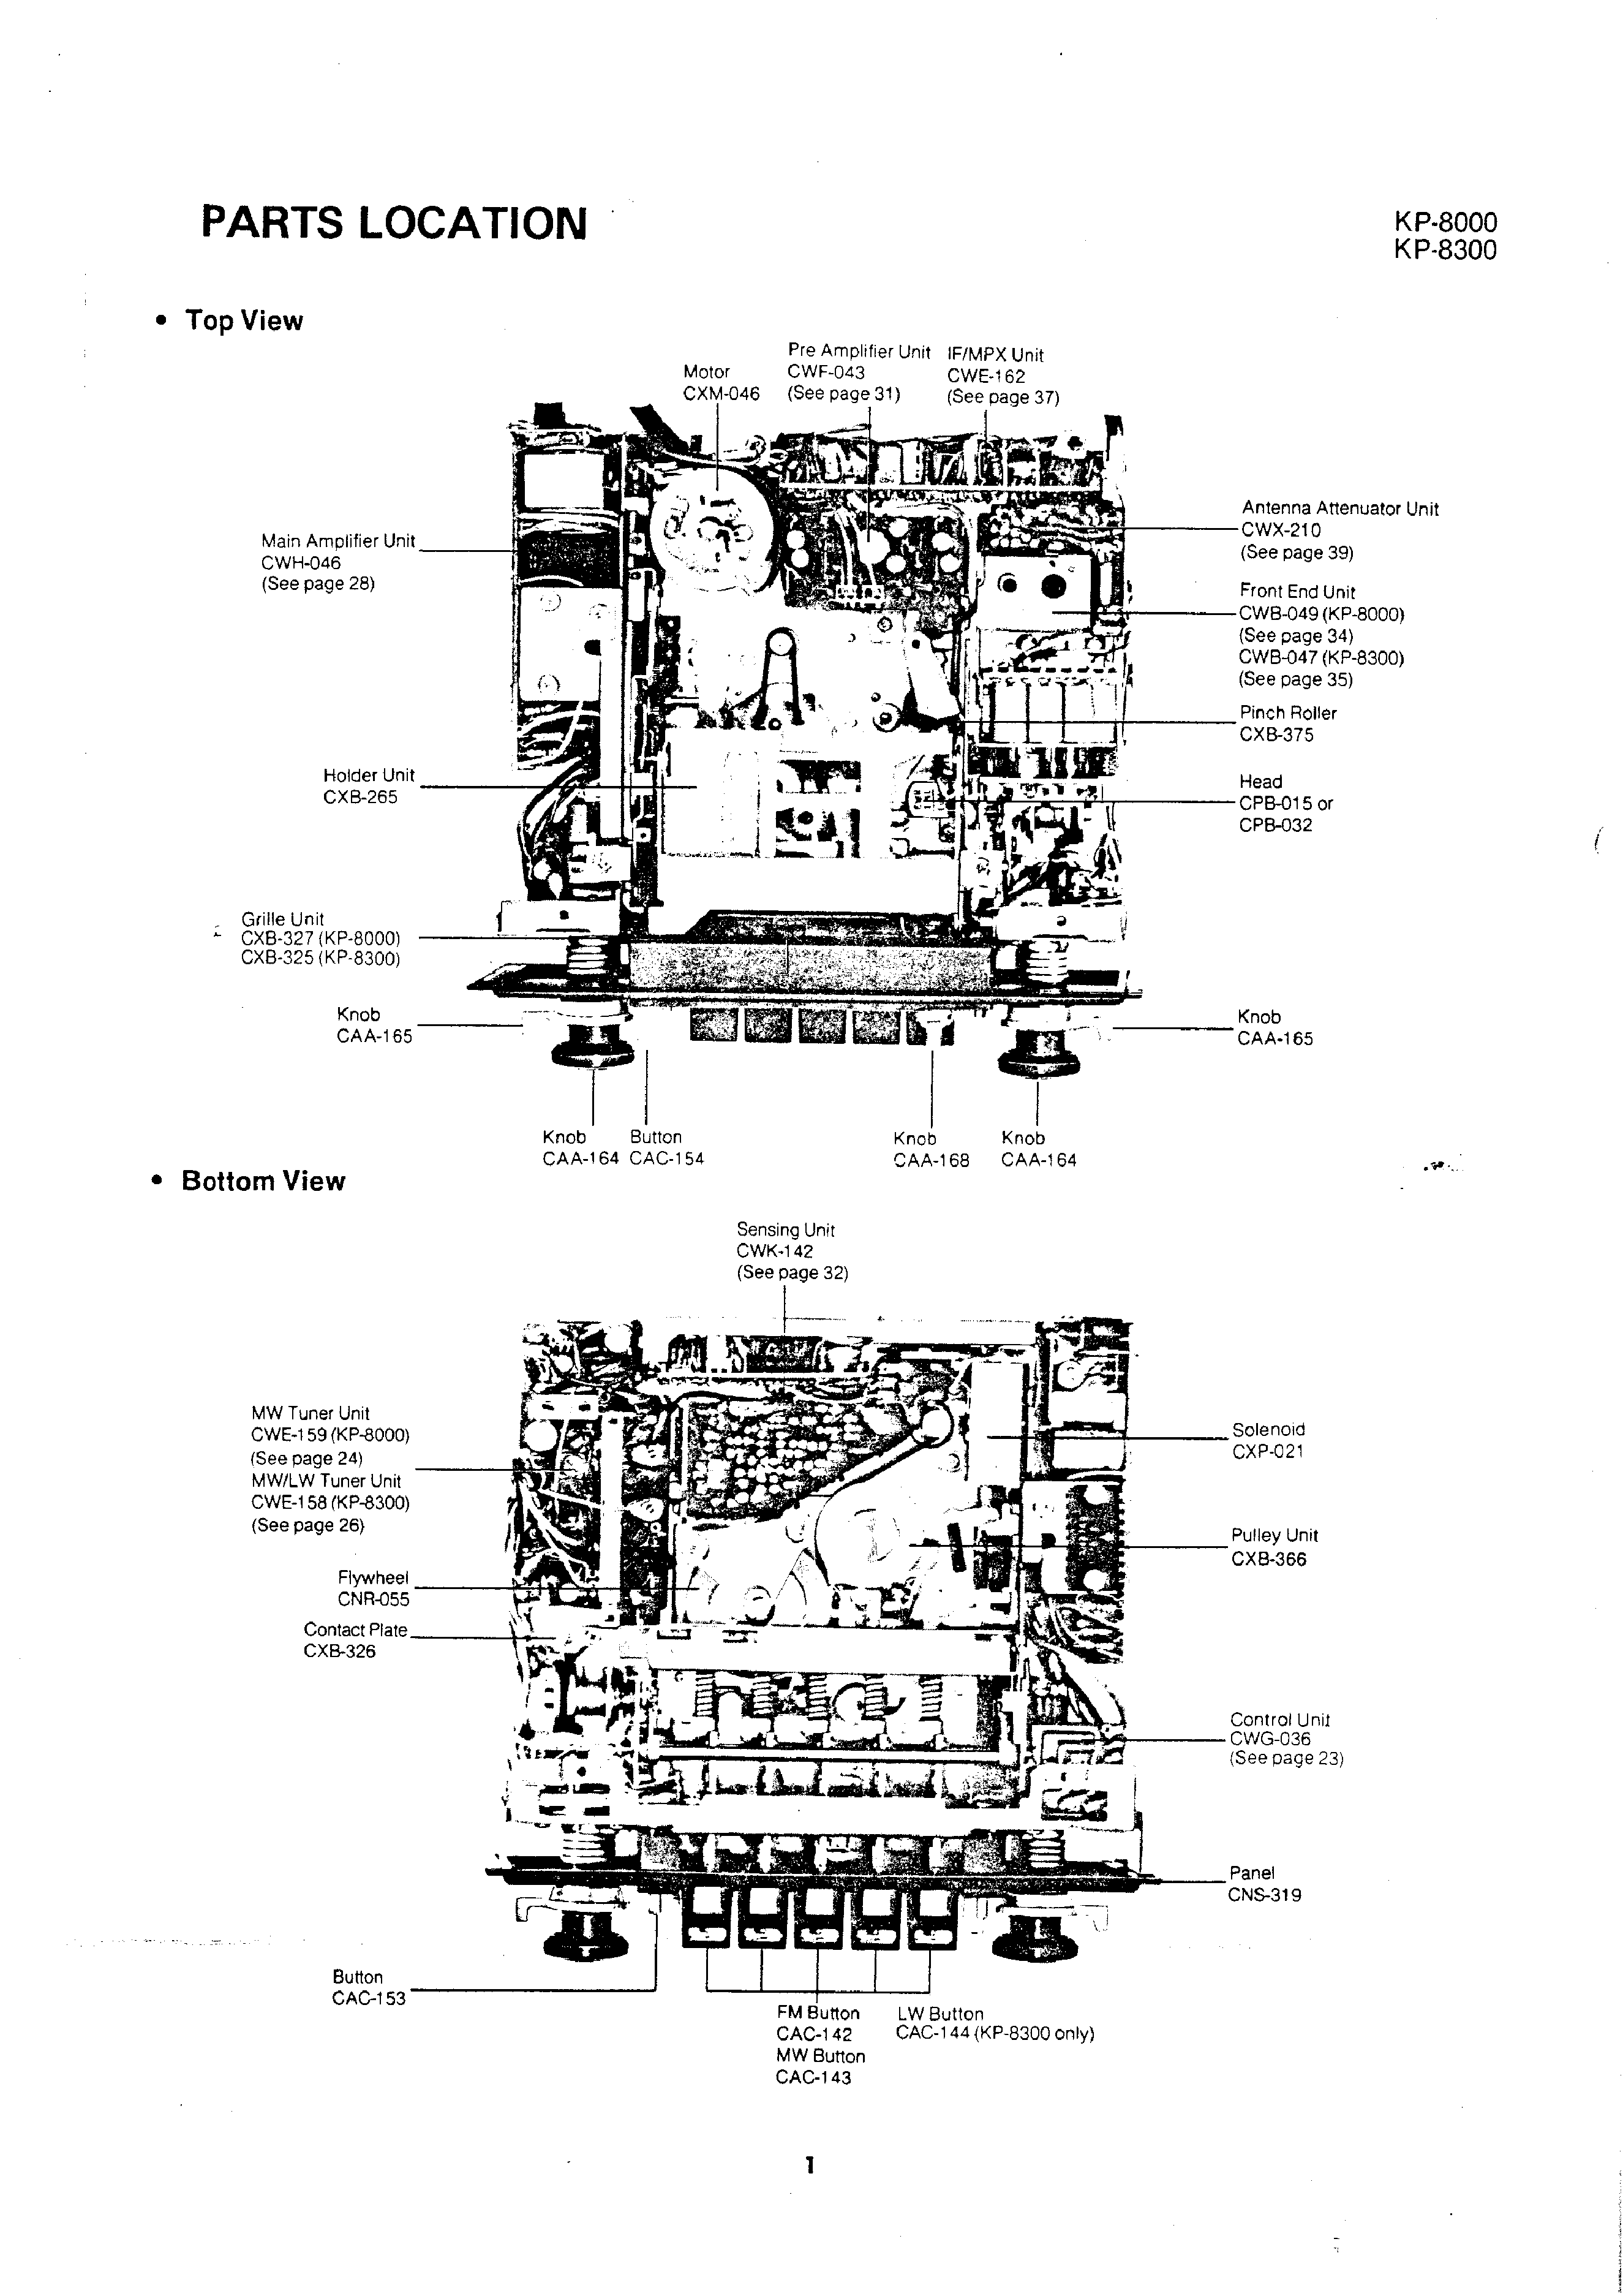 service manual for pioneer kp8000